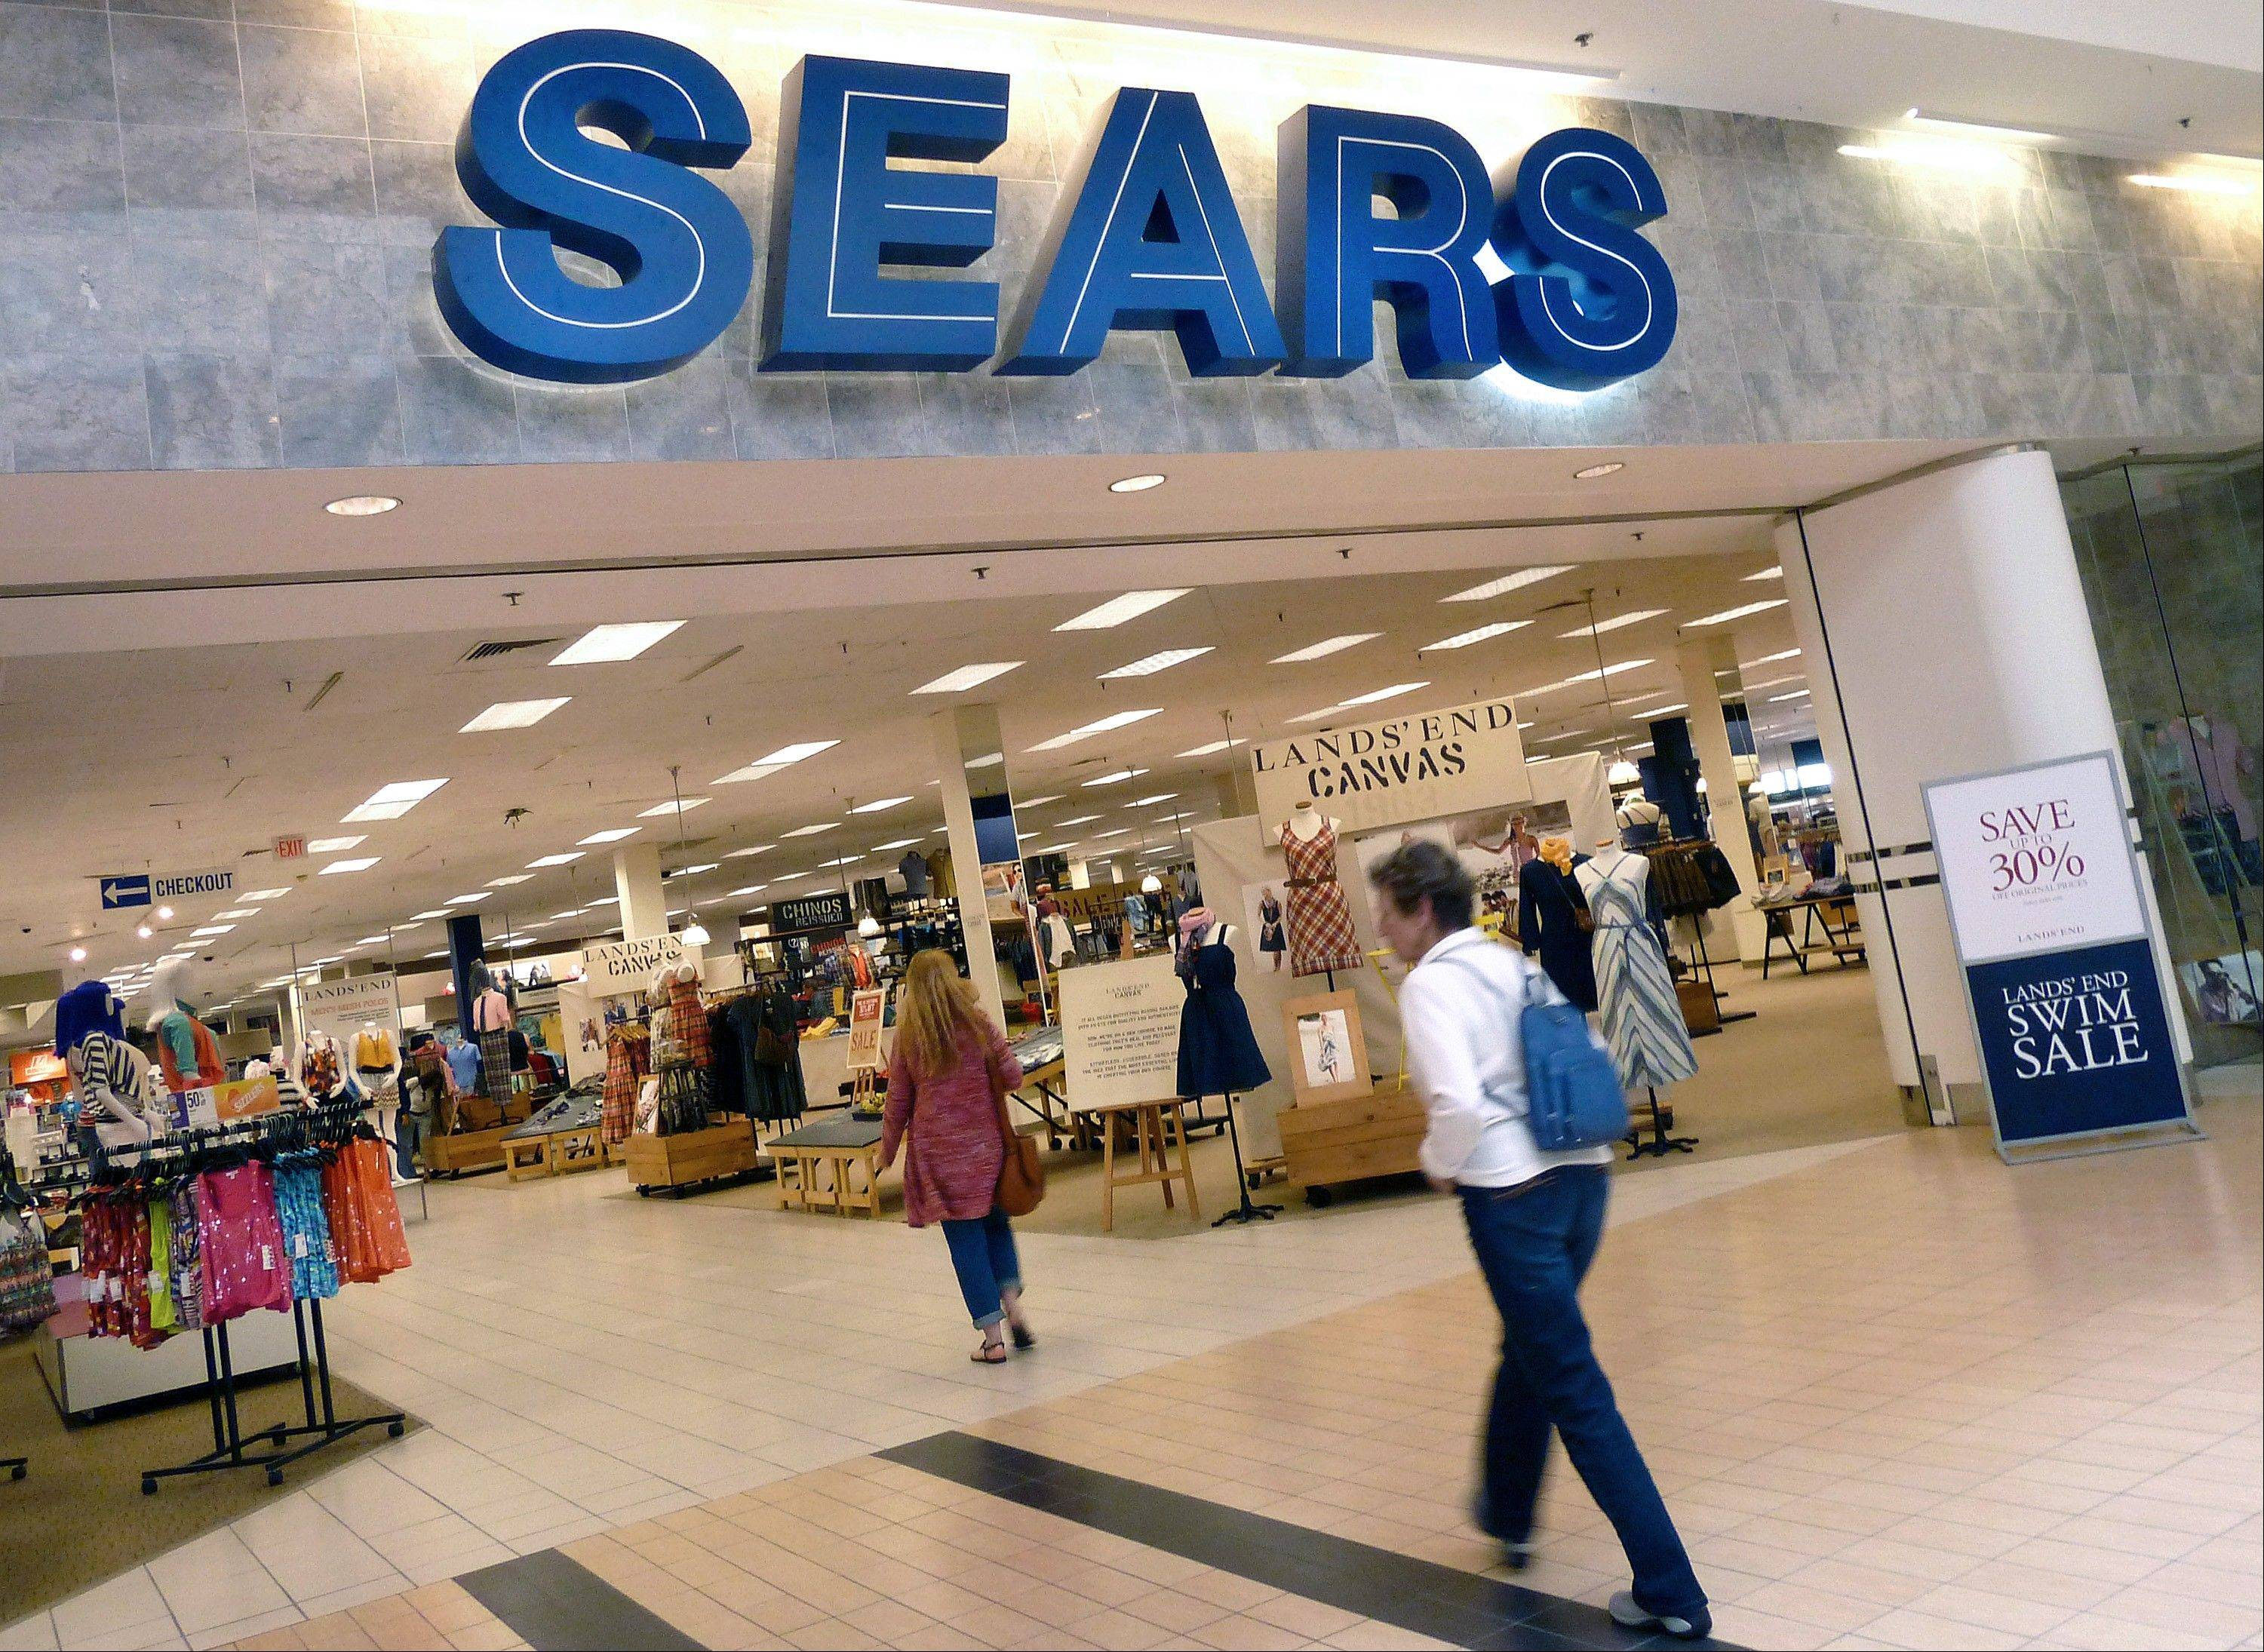 Sears to spin off Lands' End business